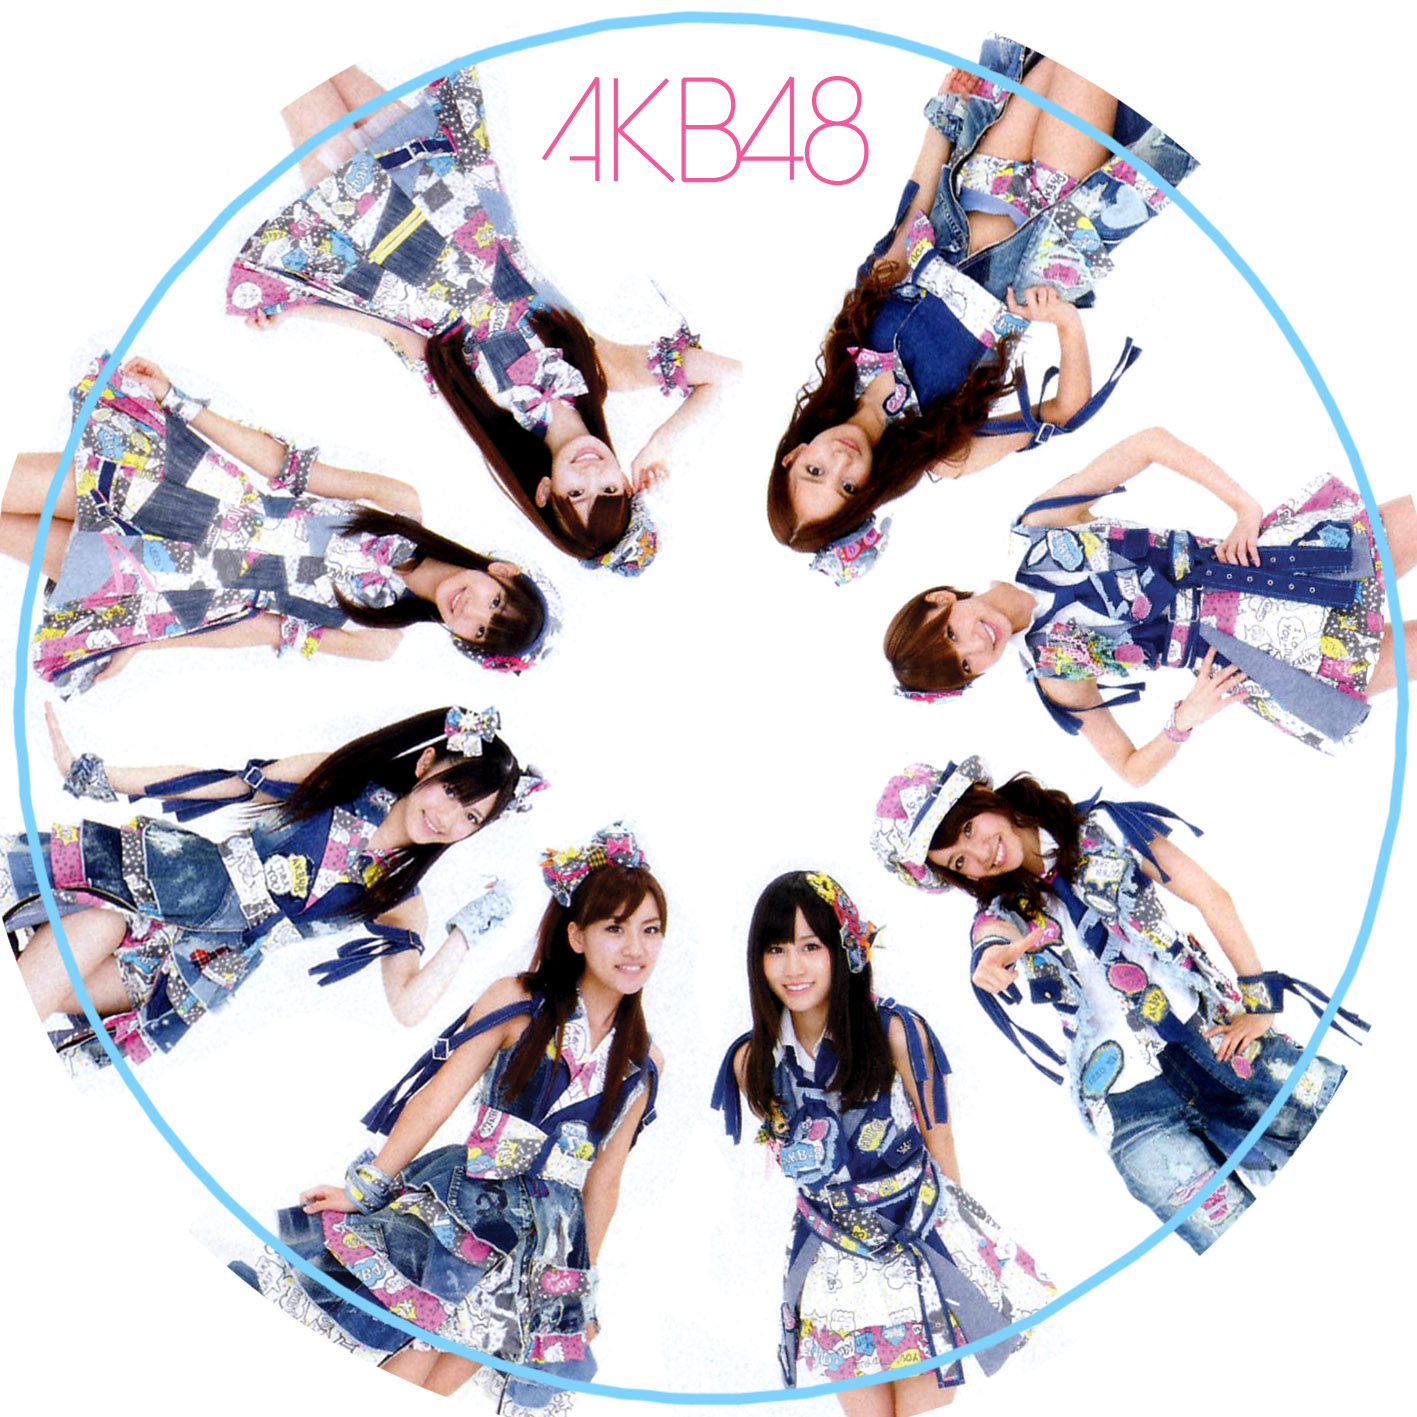 akb48 Dvd And